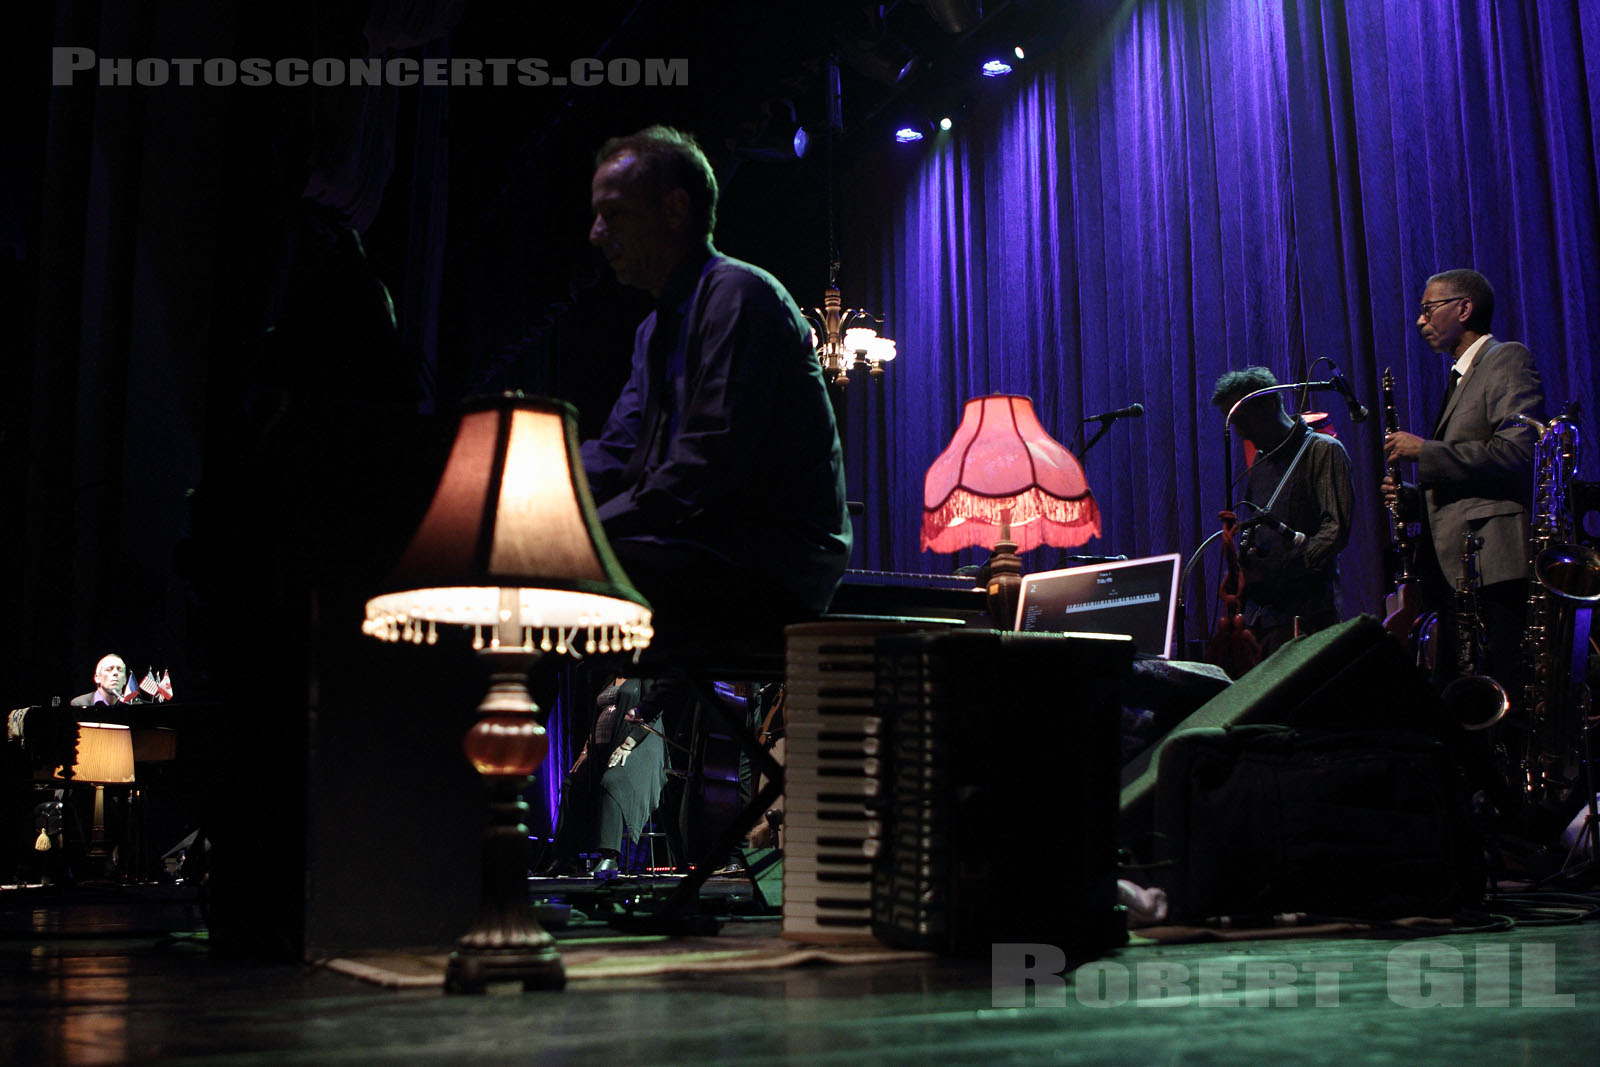 HUGH LAURIE - 2012-07-10 - PARIS - Grand Rex